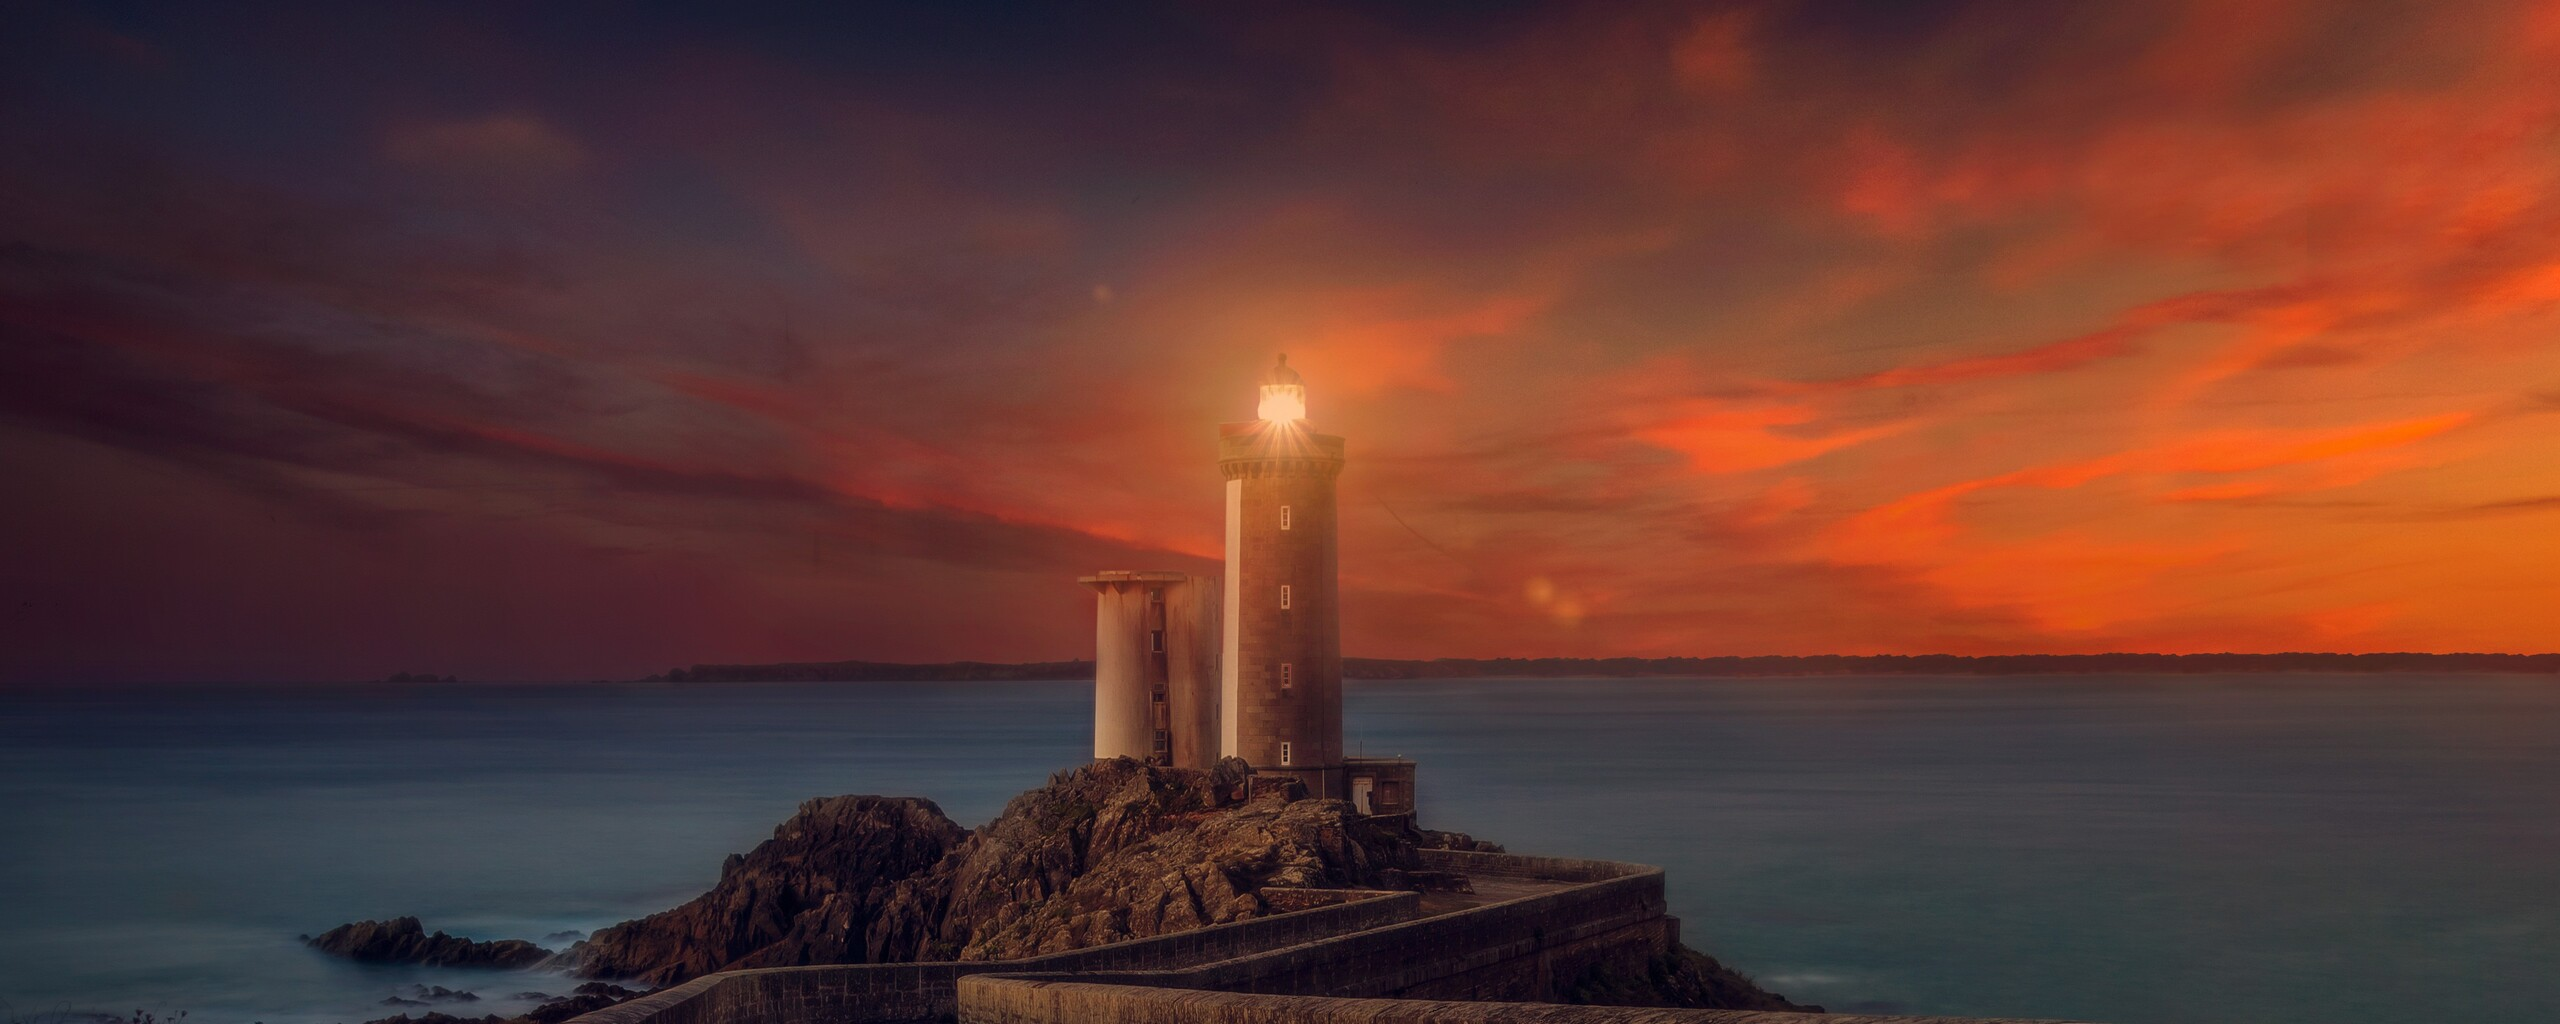 2560x1024 Lighthouse Sunset Scene 2560x1024 Resolution HD